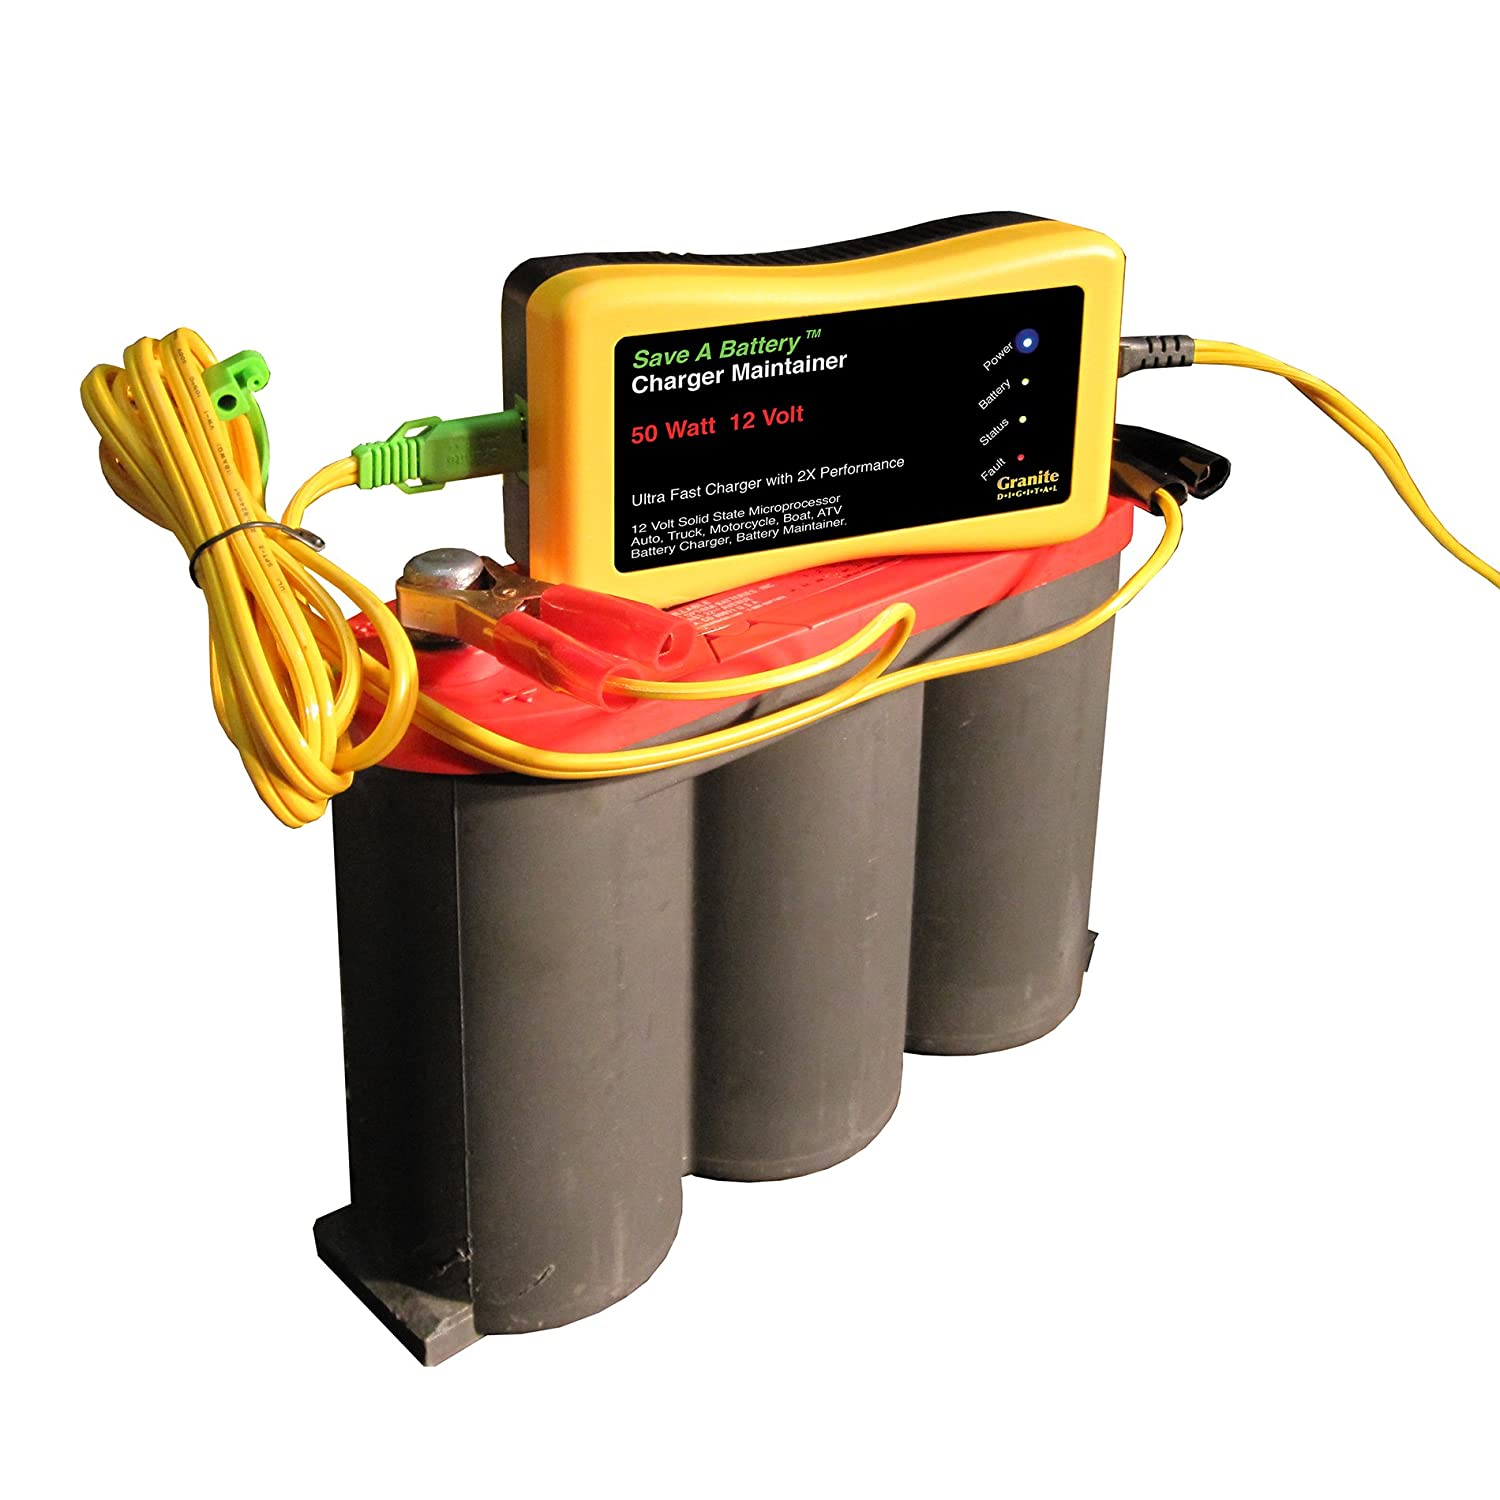 Battery Saver 2365 12v 50w Quick Charger And Auto Pulse Desulphation Progress Monitor Maintainer Automotive